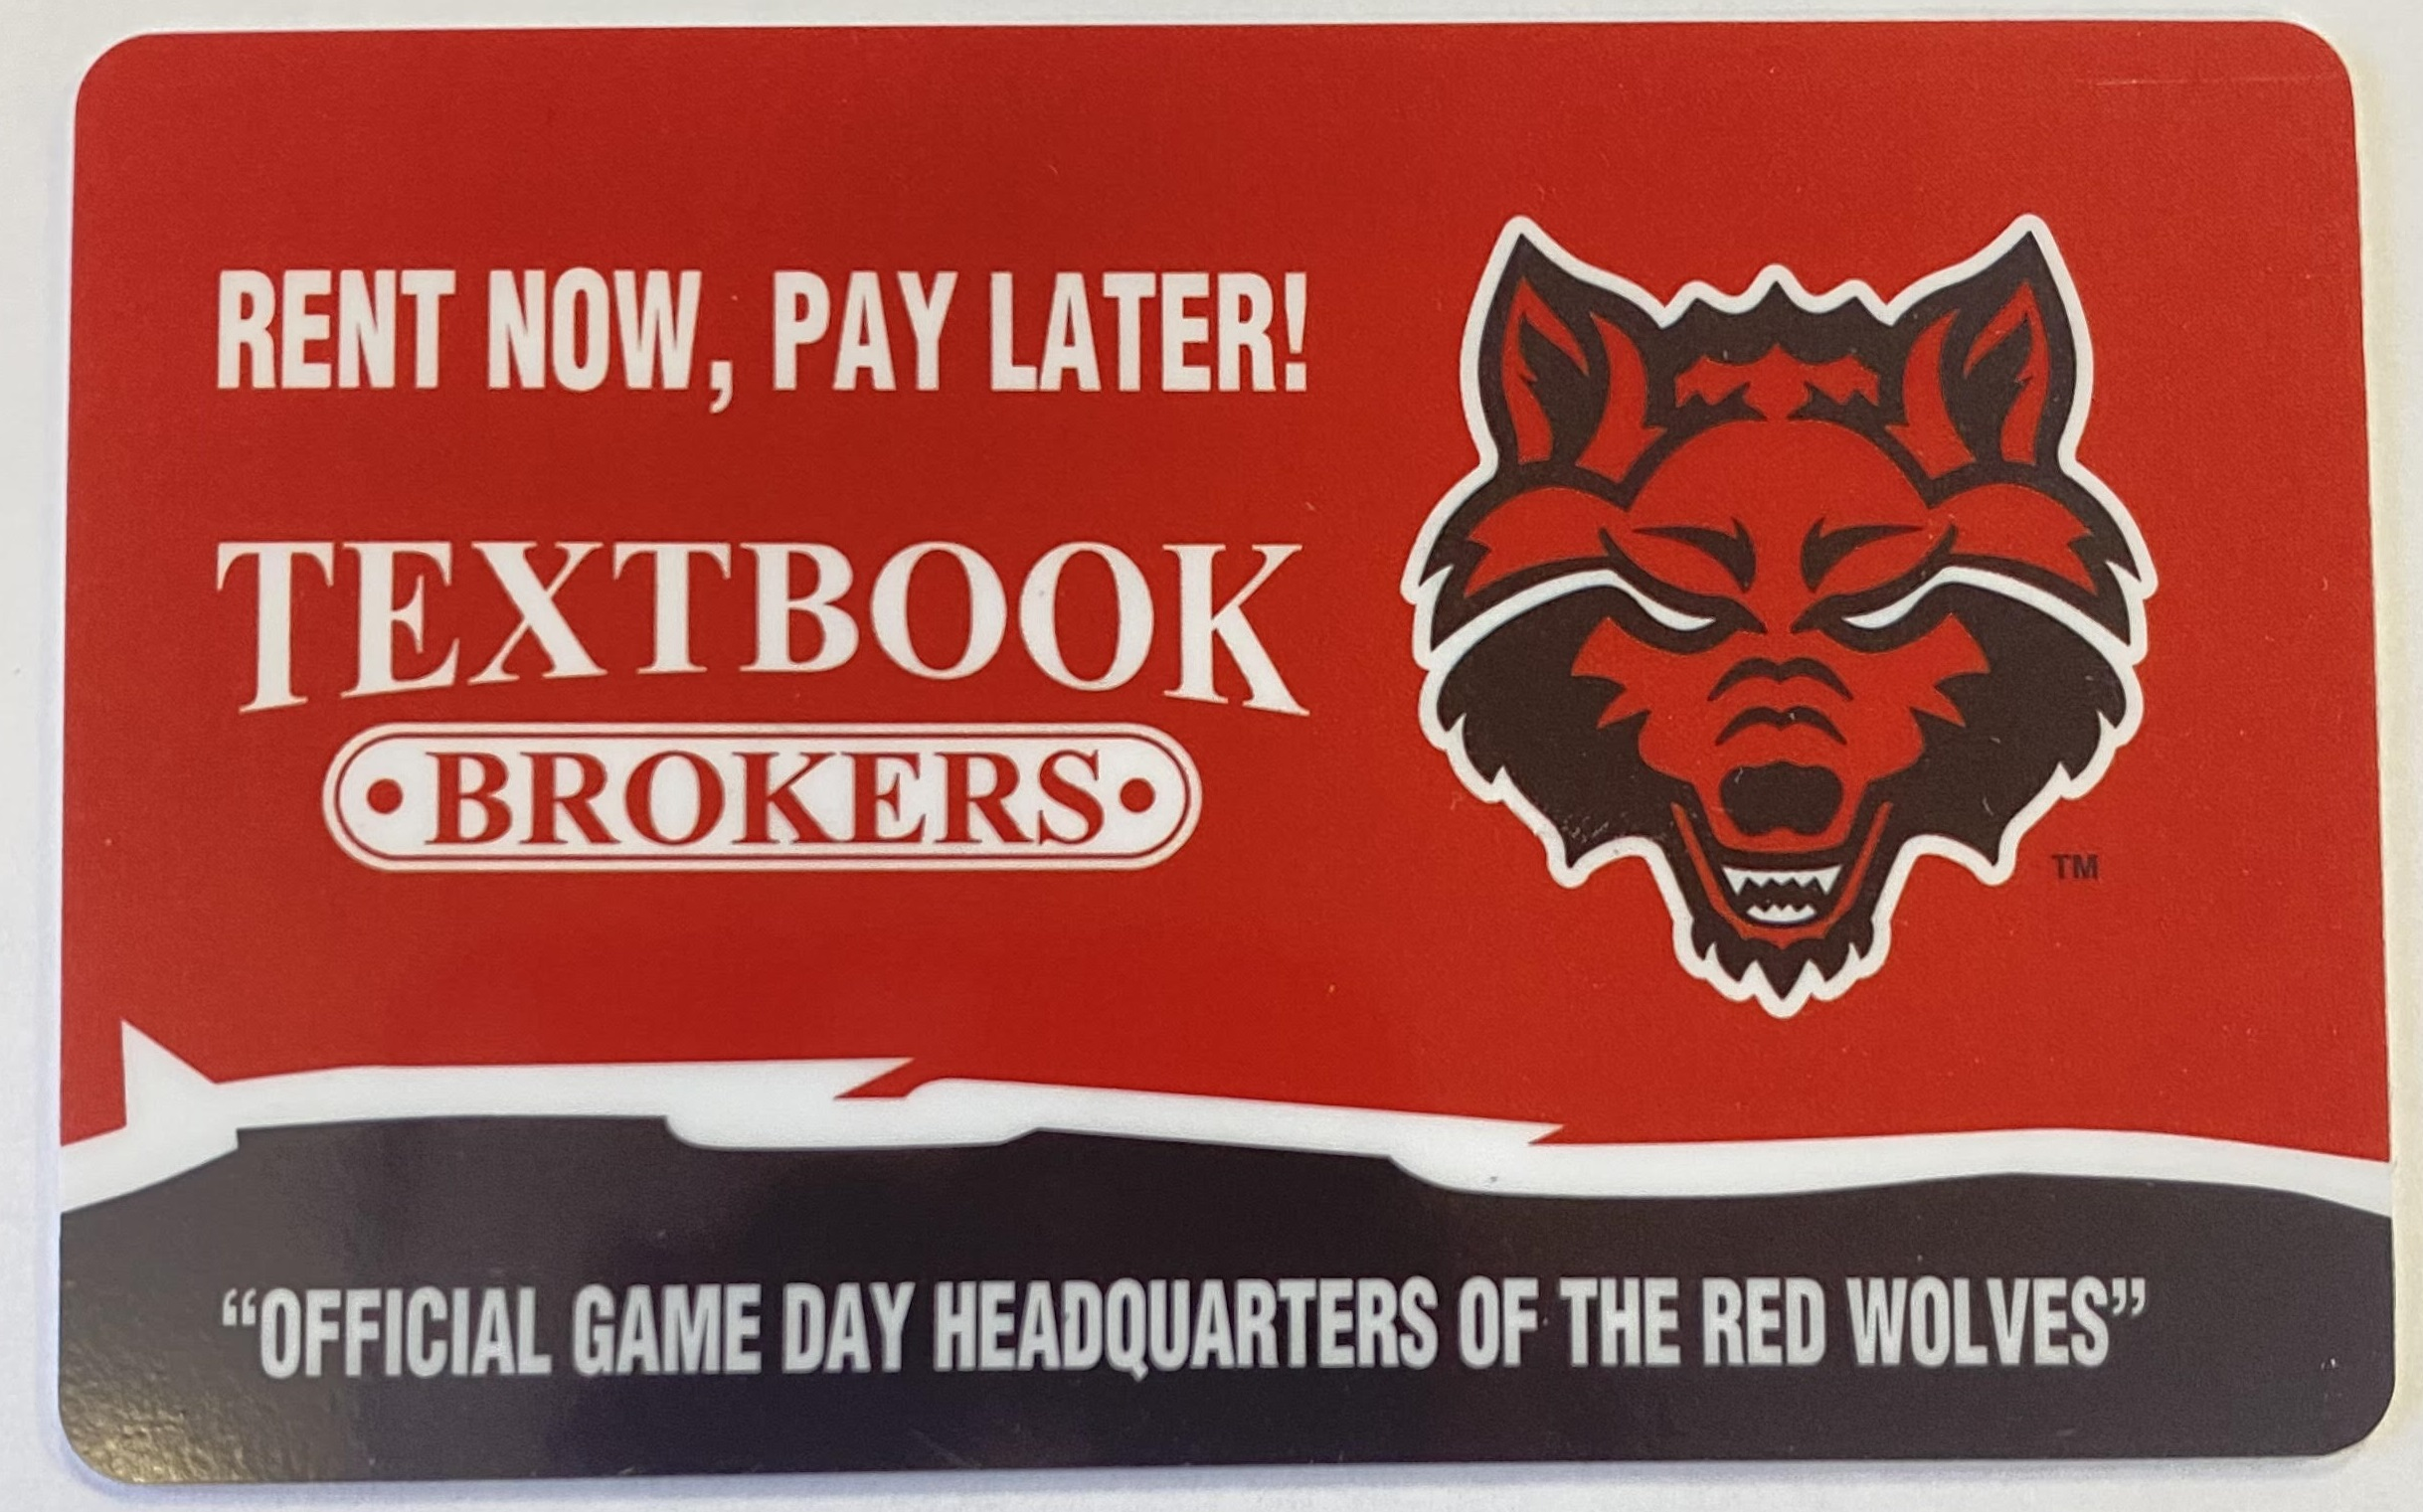 $20 Textbook Brokers Gift Card